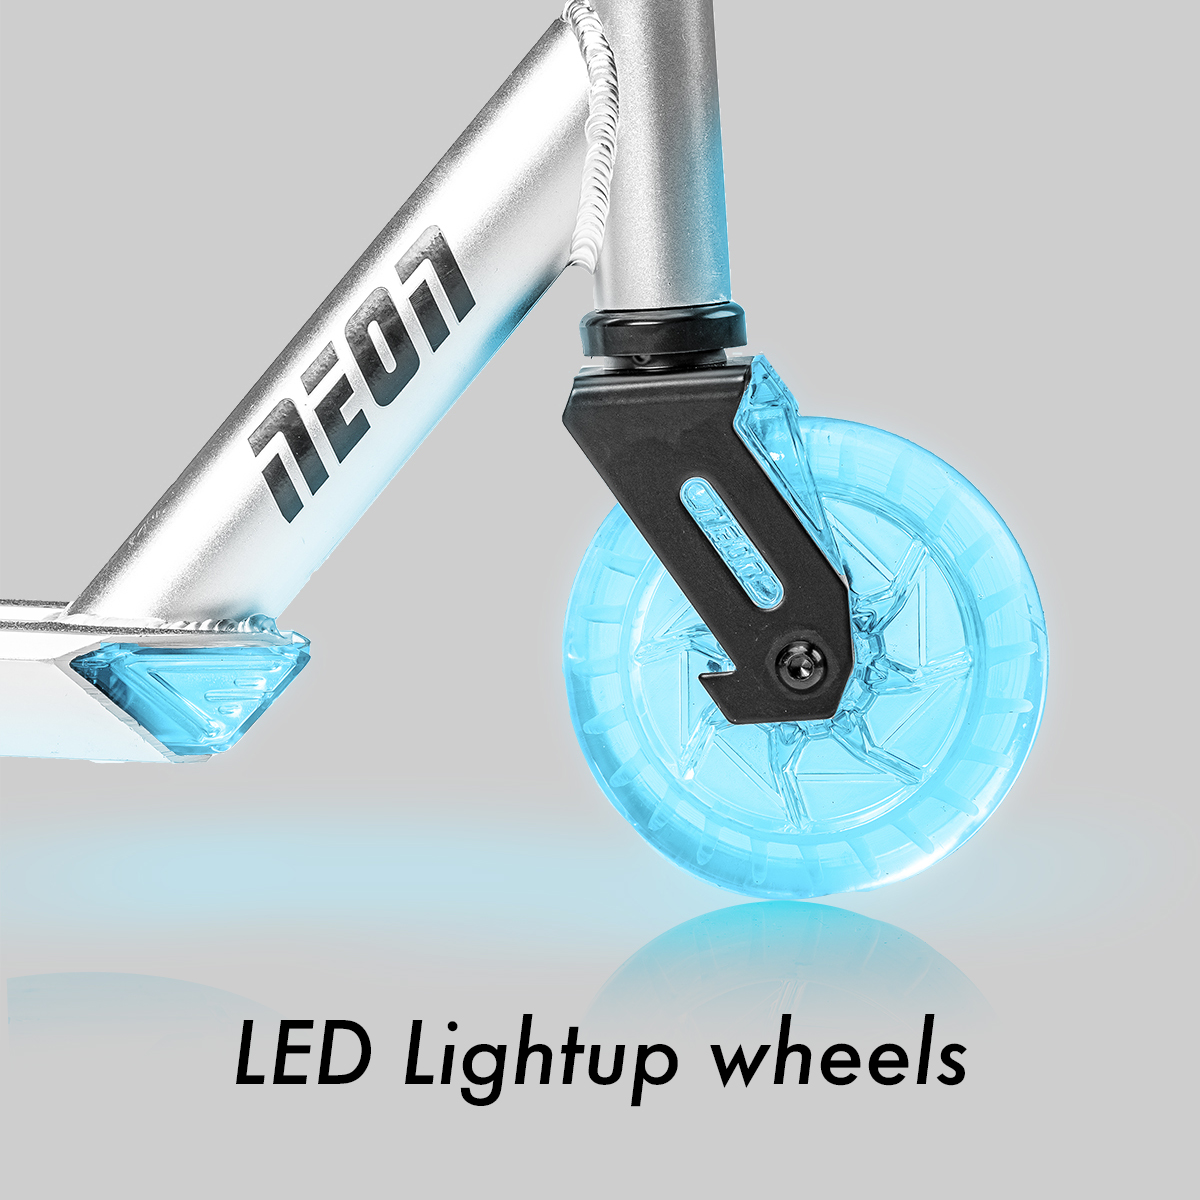 Transparent light up wheels